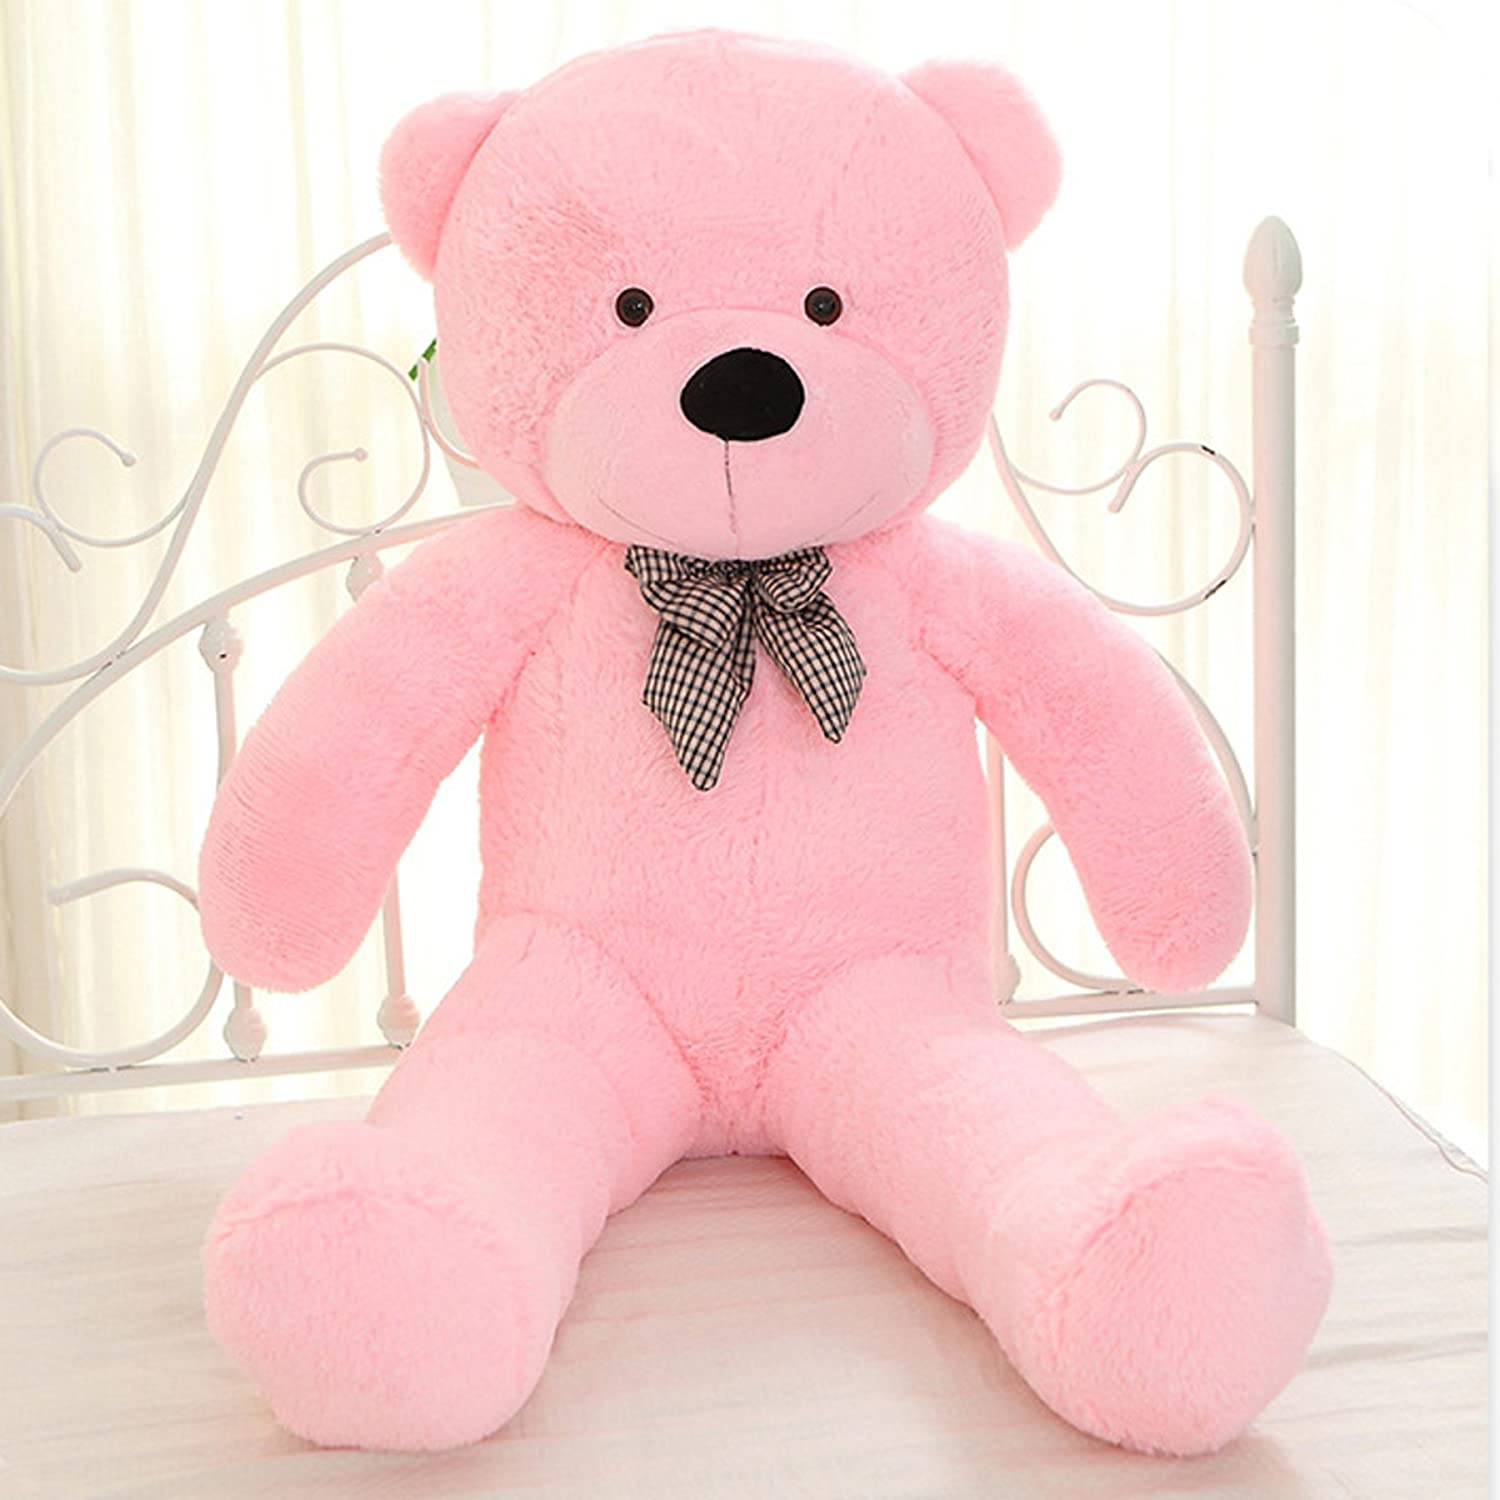 Amazon.com: MorisMos Giant Cute Soft Toys Teddy Bear for Girlfriend Kids Teddy Bear (Pink, 39 Inch): Toys & Games